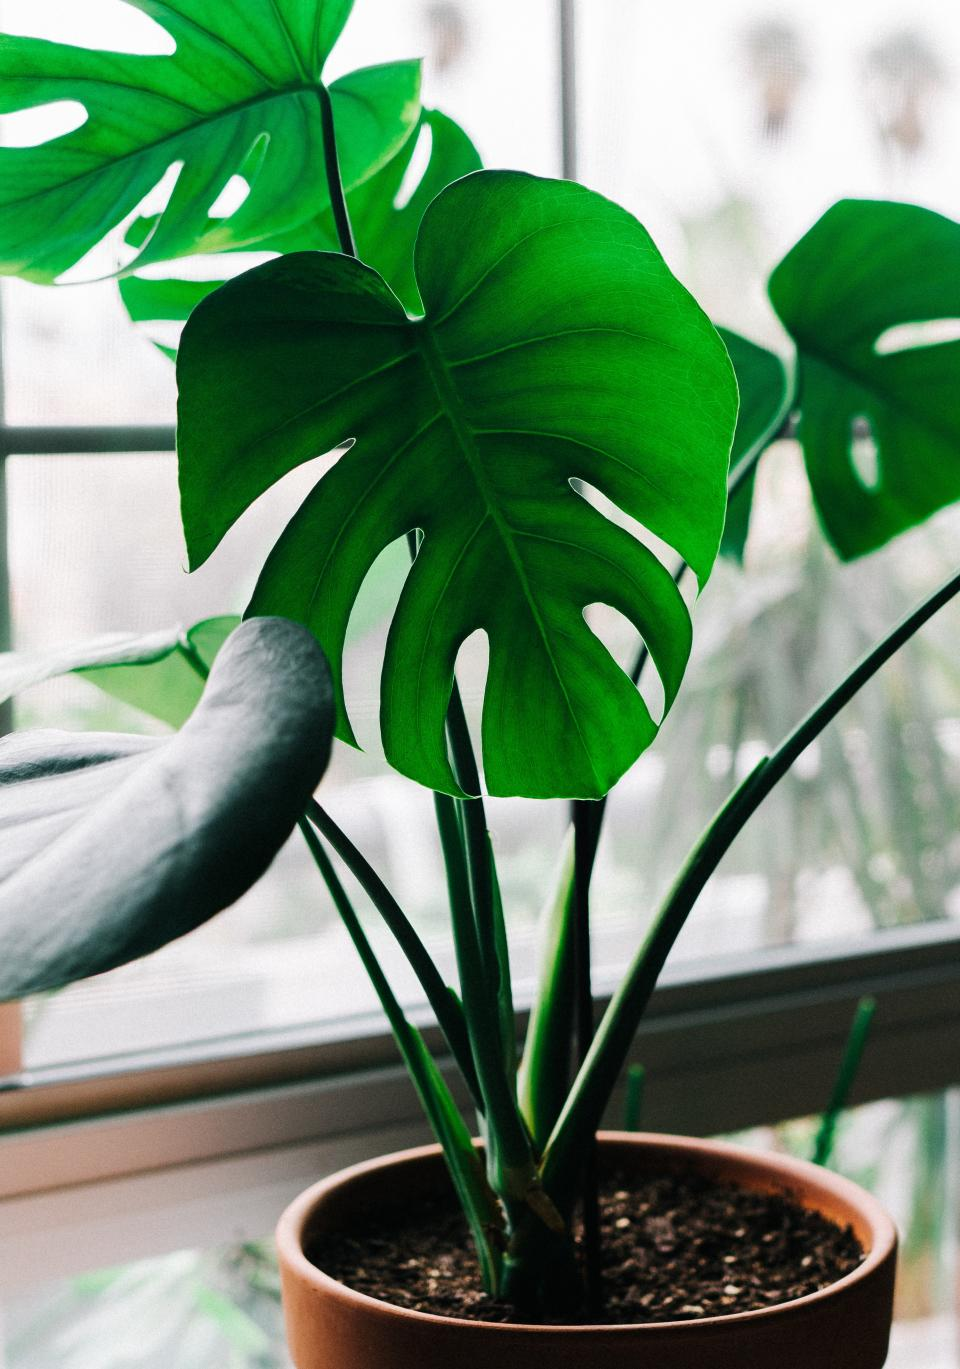 Most Instagrammed house plants